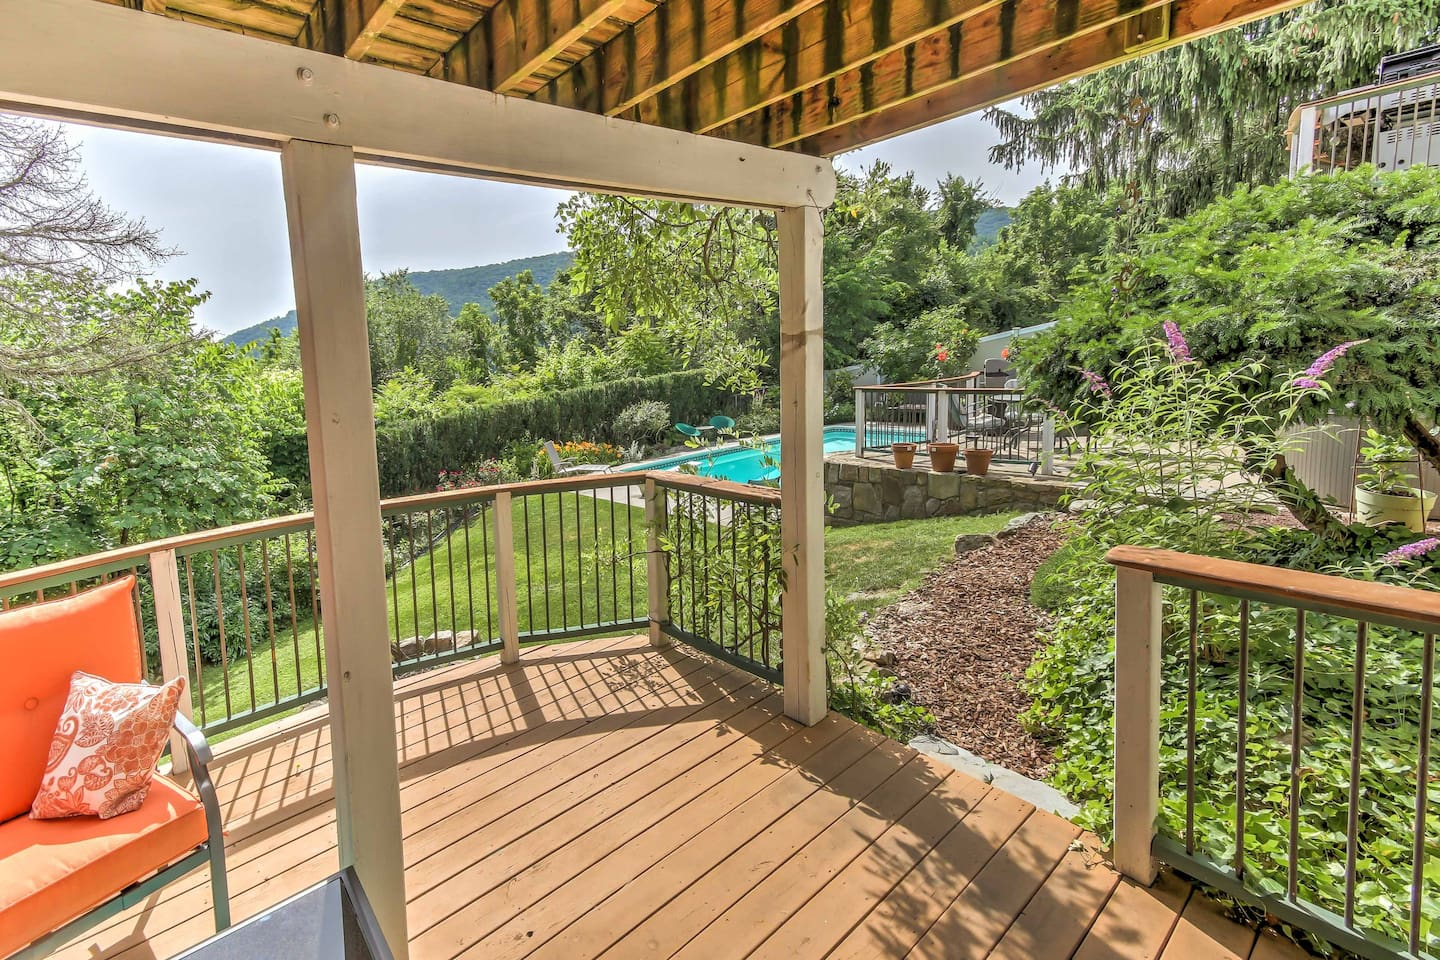 Escape to Harpers Ferry at this 2-bedroom, 1-bathroom vacation rental apartment.